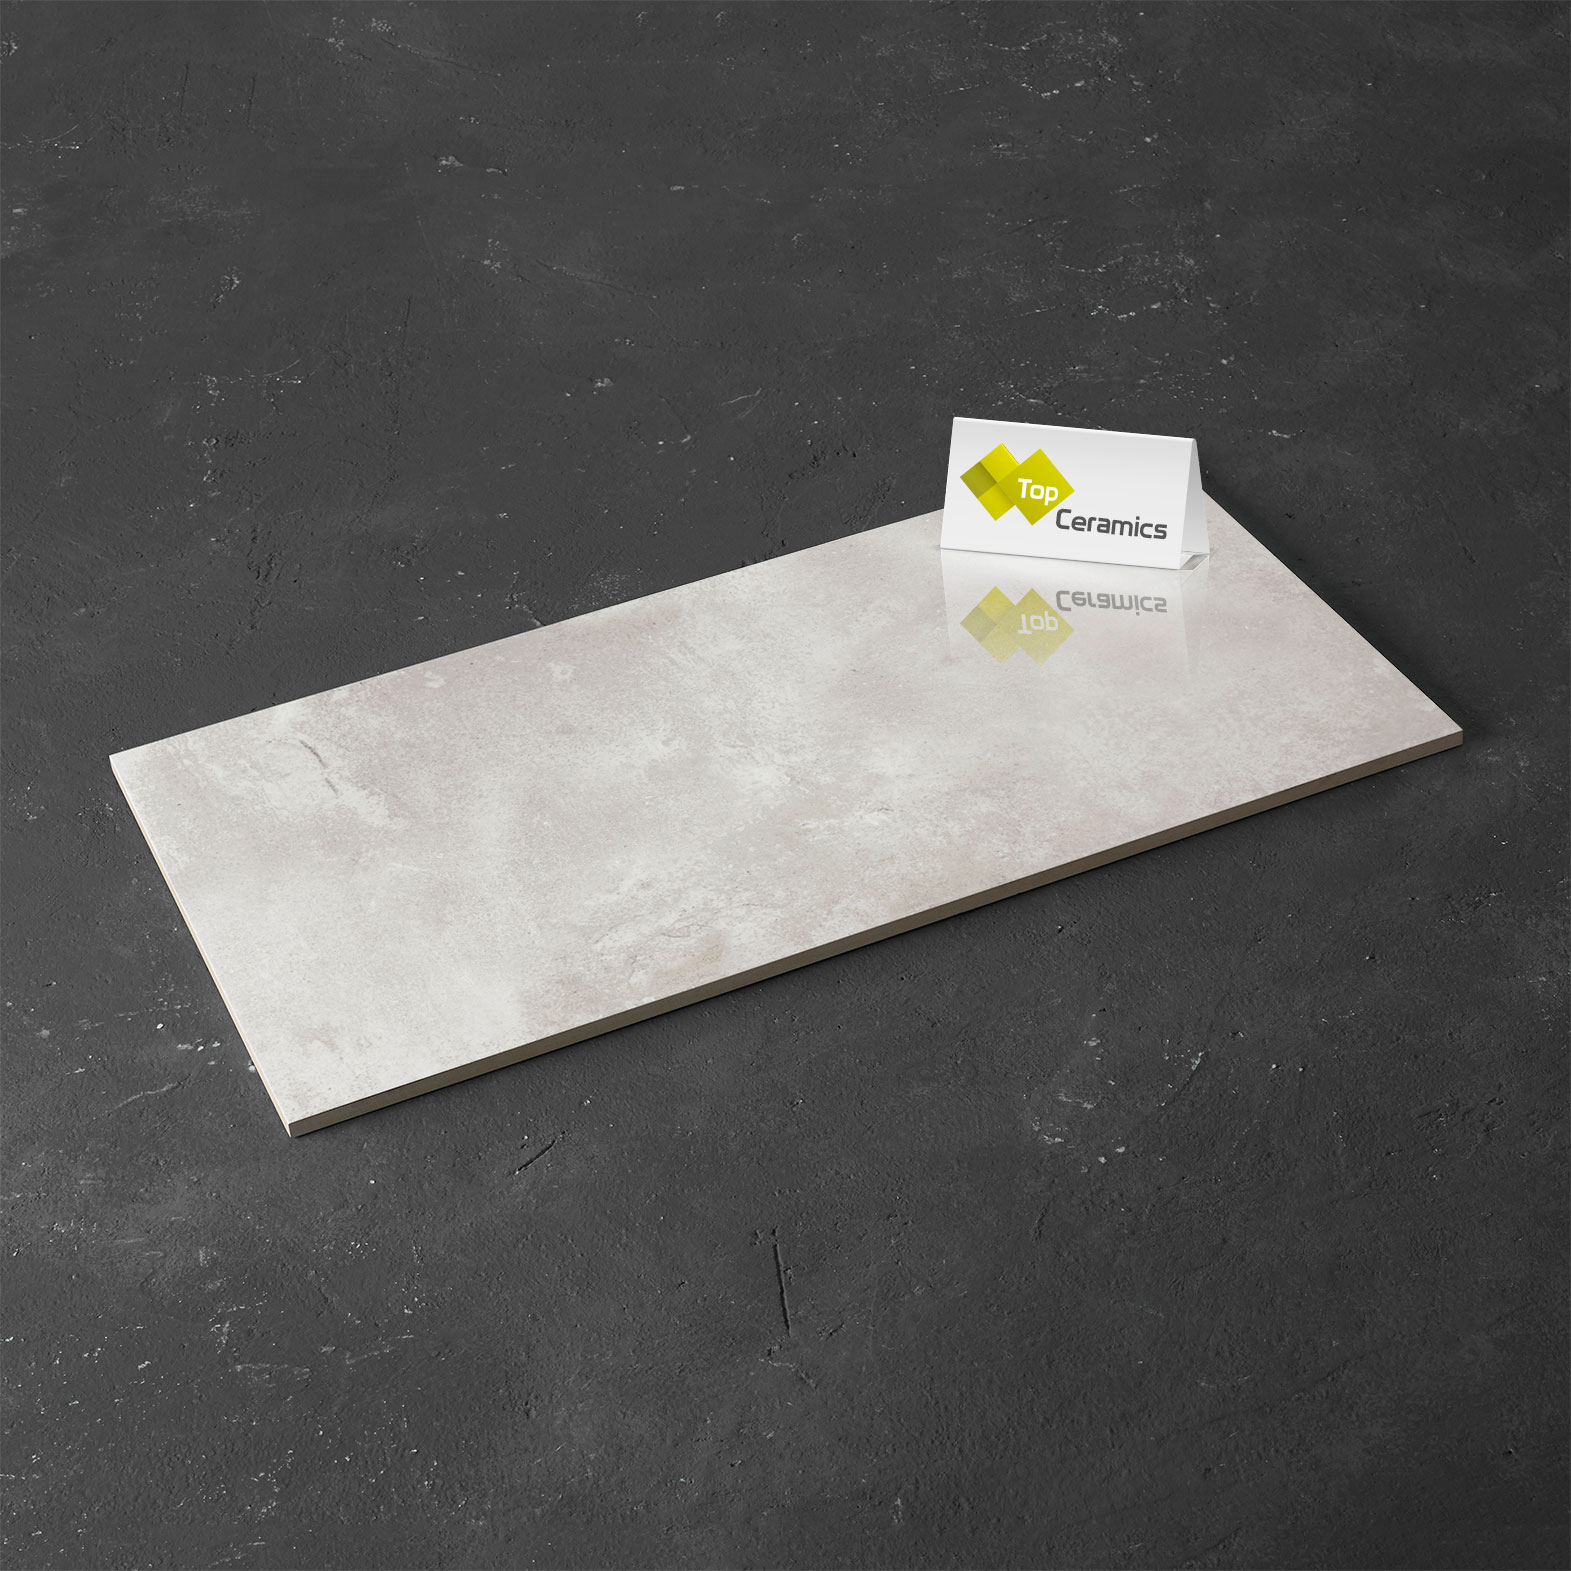 Cemento canberra high glosssize 60x30cm top ceramics porcelain tiles dailygadgetfo Images